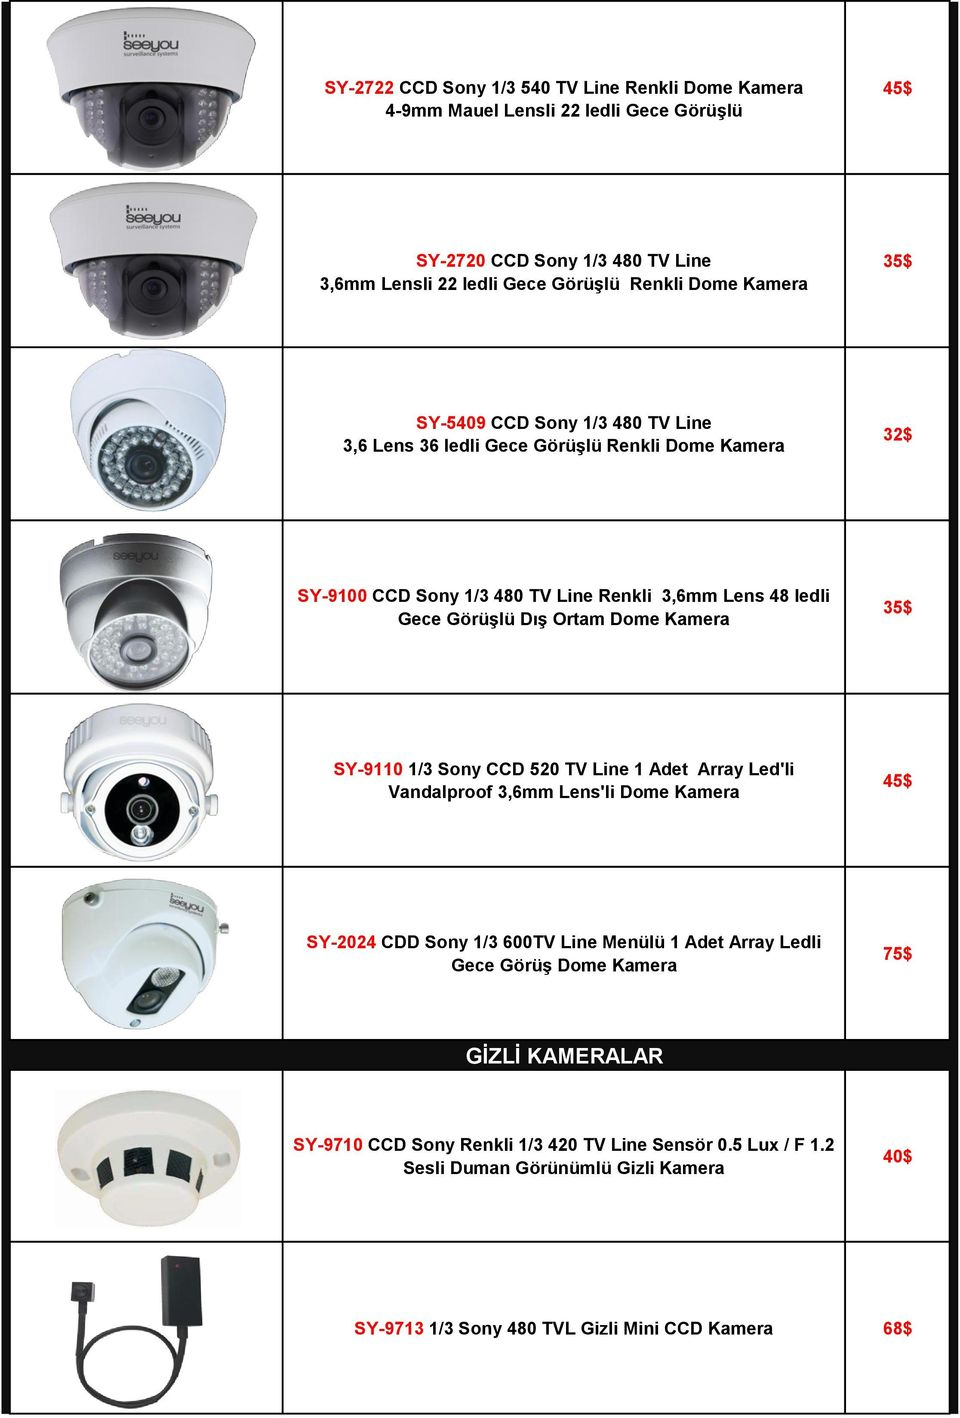 Dome Kamera 35$ SY-9110 1/3 Sony CCD 520 TV Line 1 Adet Array Led'li Vandalproof 3,6mm Lens'li Dome Kamera 45$ SY-2024 CDD Sony 1/3 600TV Line Menülü 1 Adet Array Ledli Gece Görüş